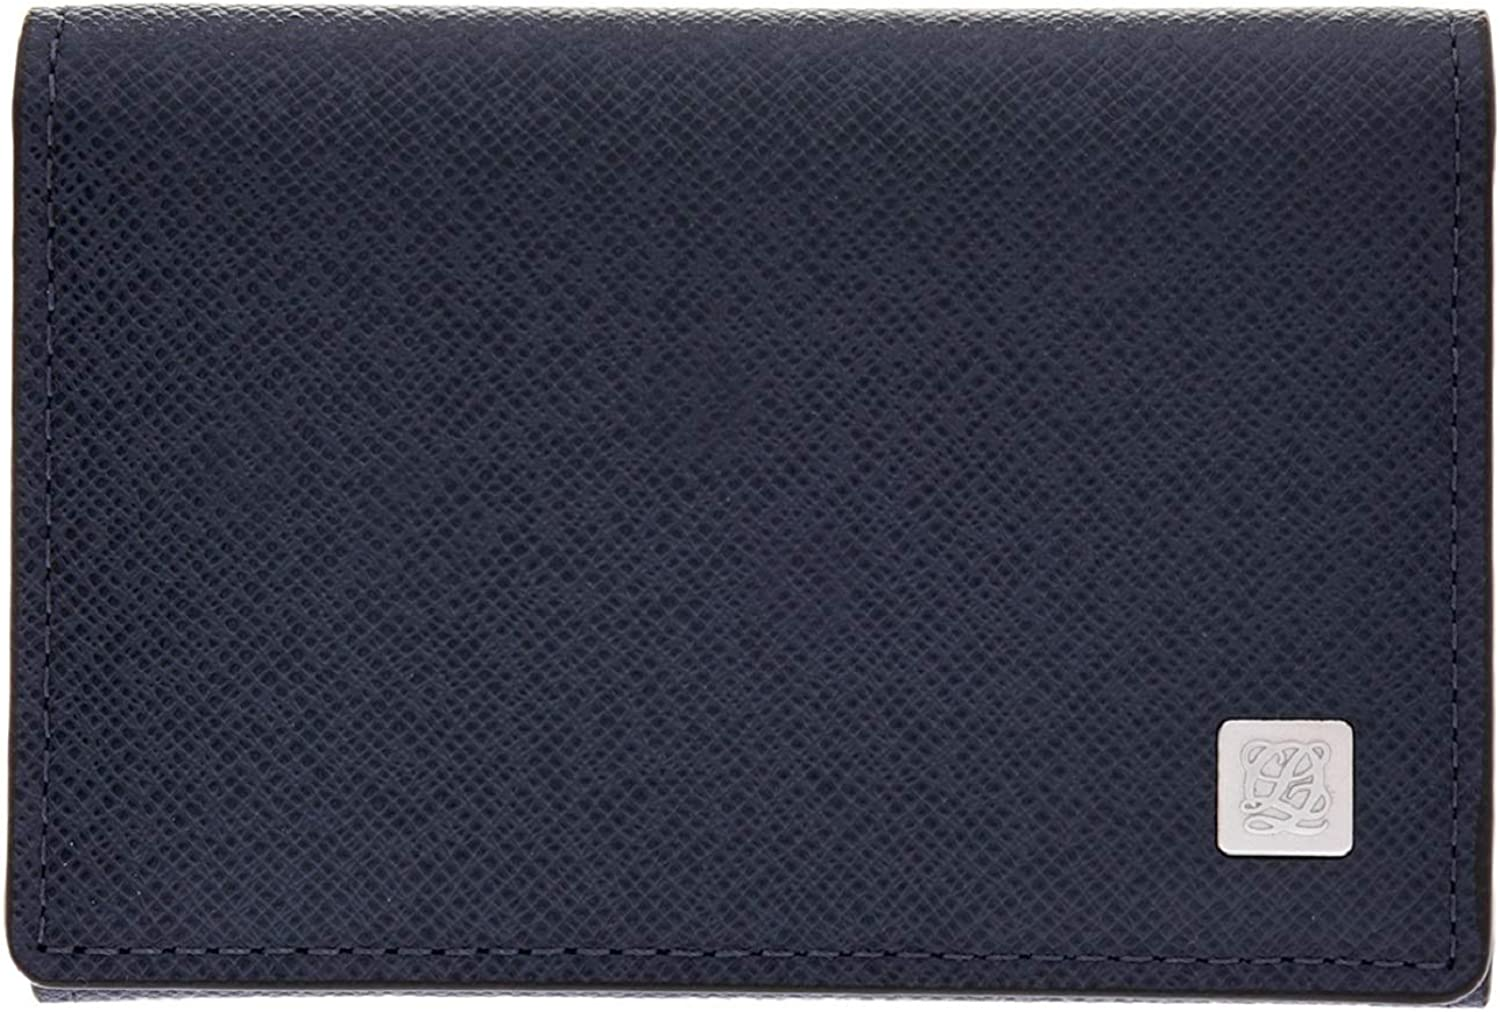 Scratch Resistant Embossed Leather Business Card Holder and Wallet